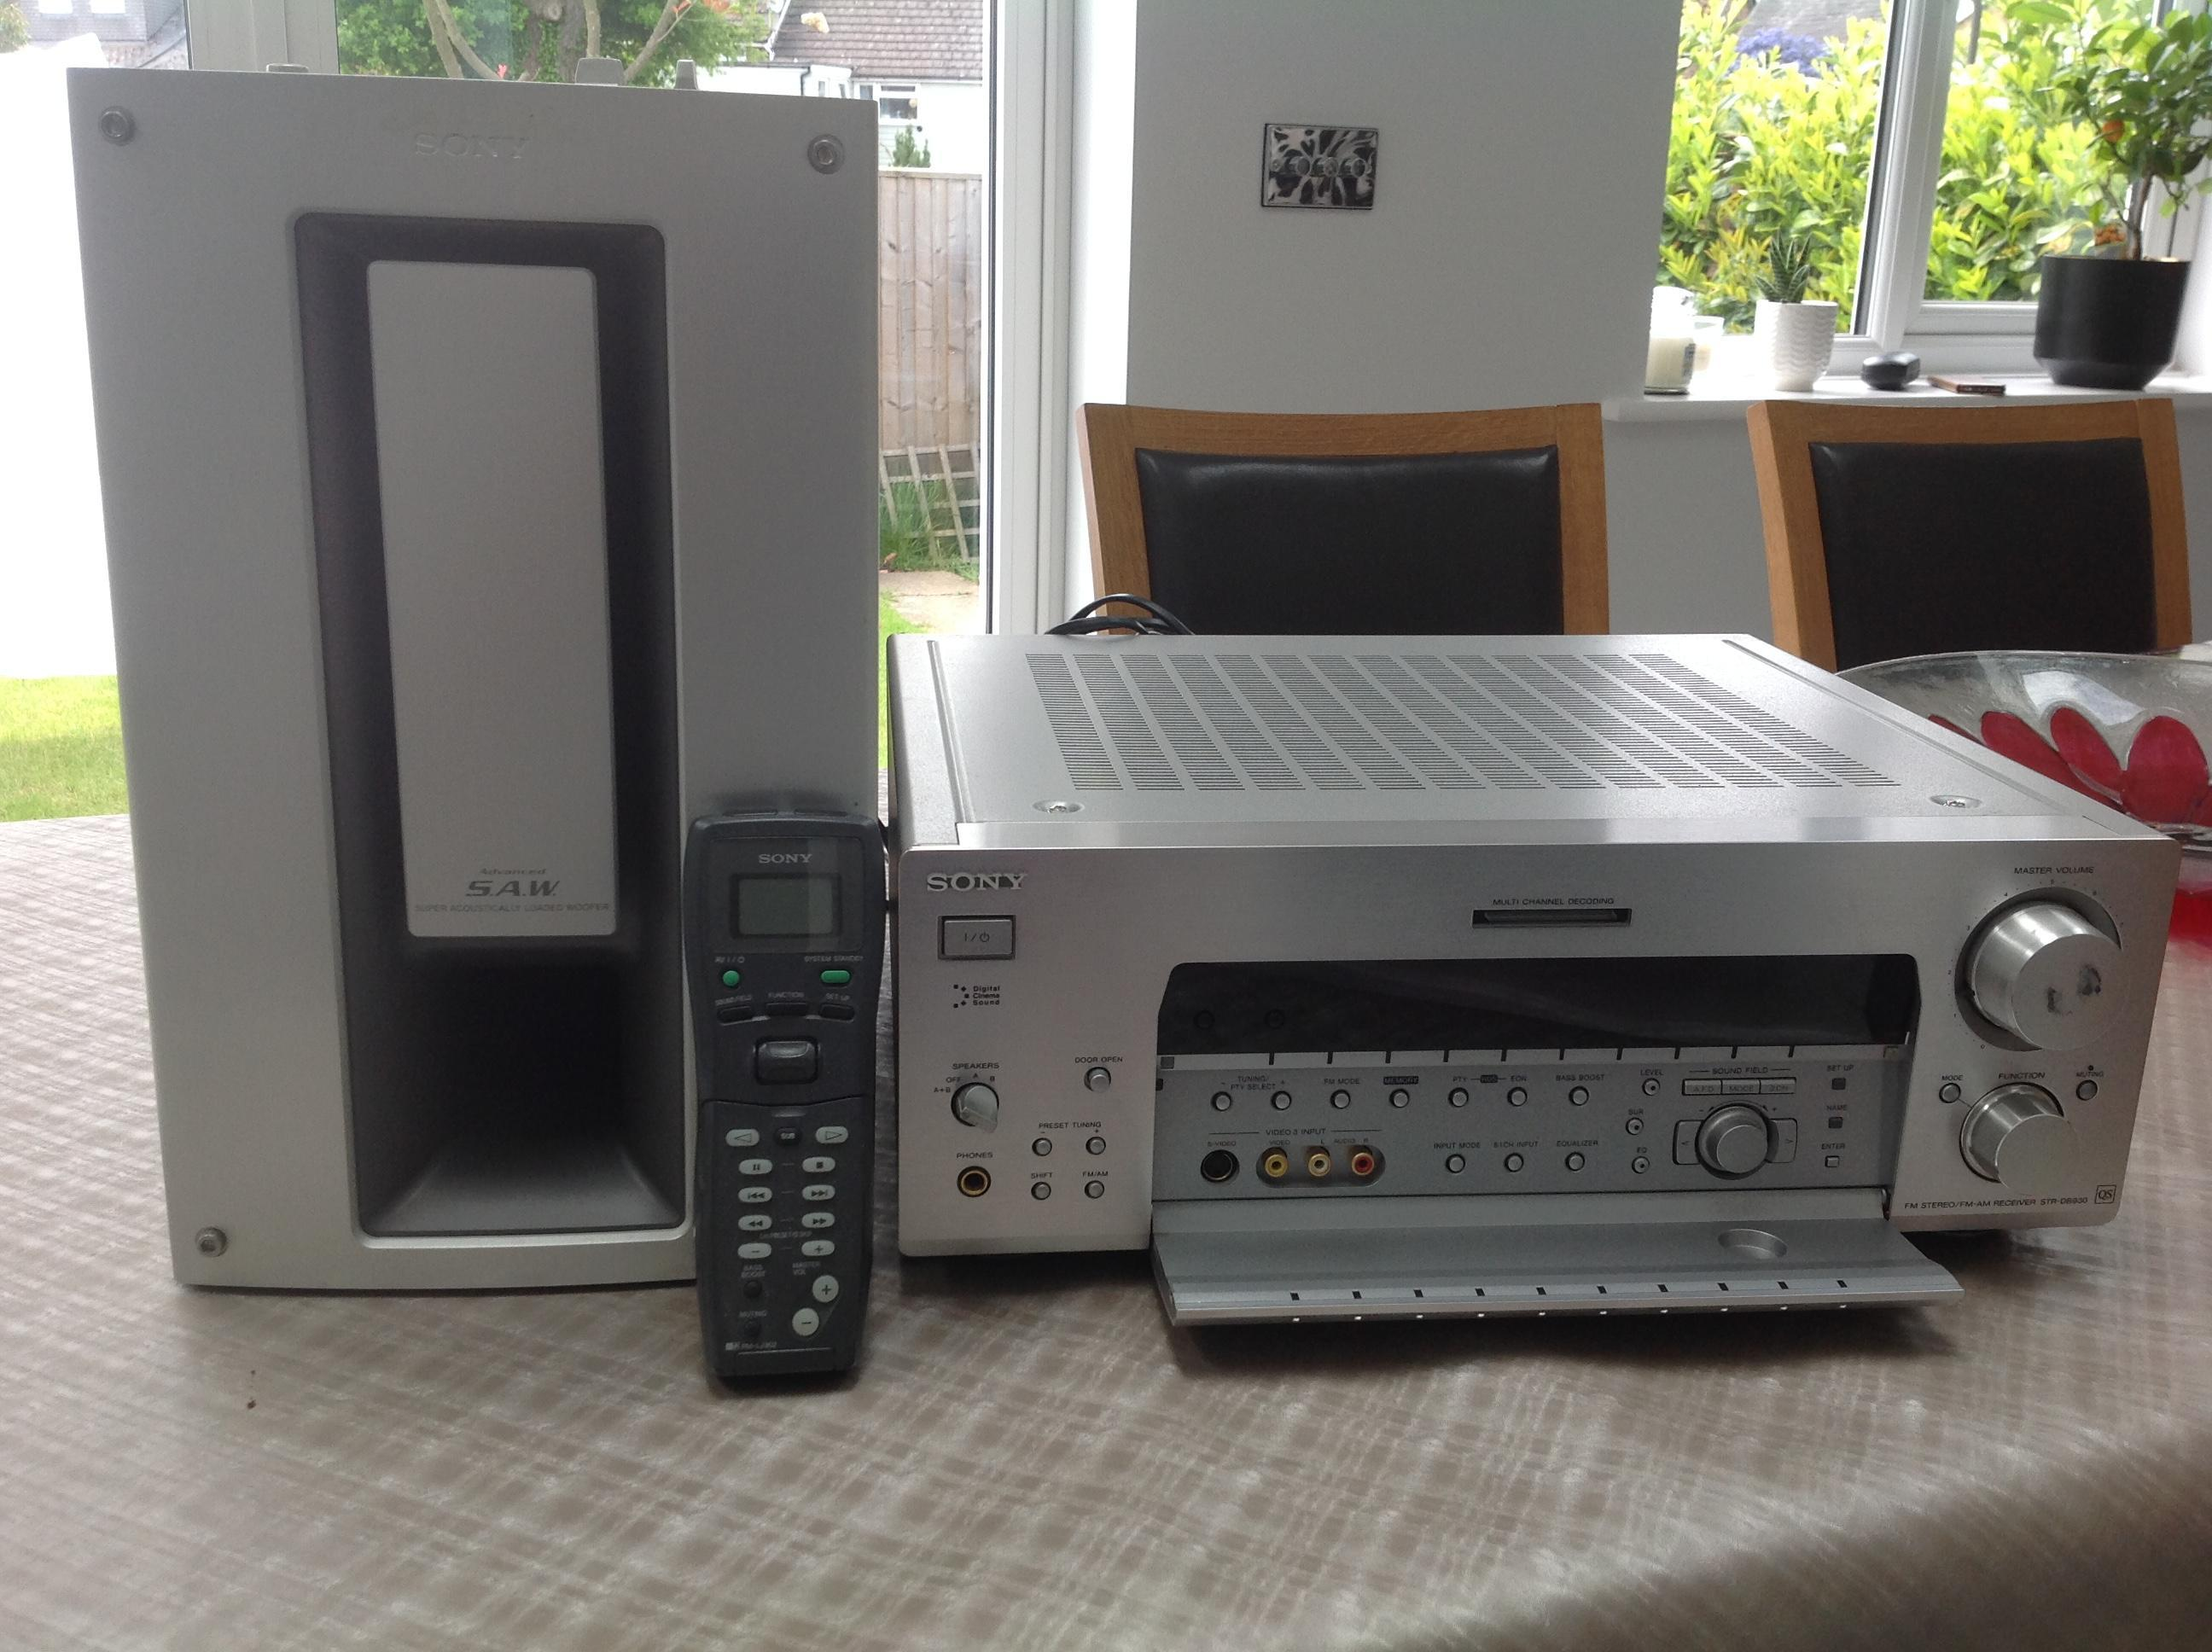 Sony home entertainment & surround sound system exc.